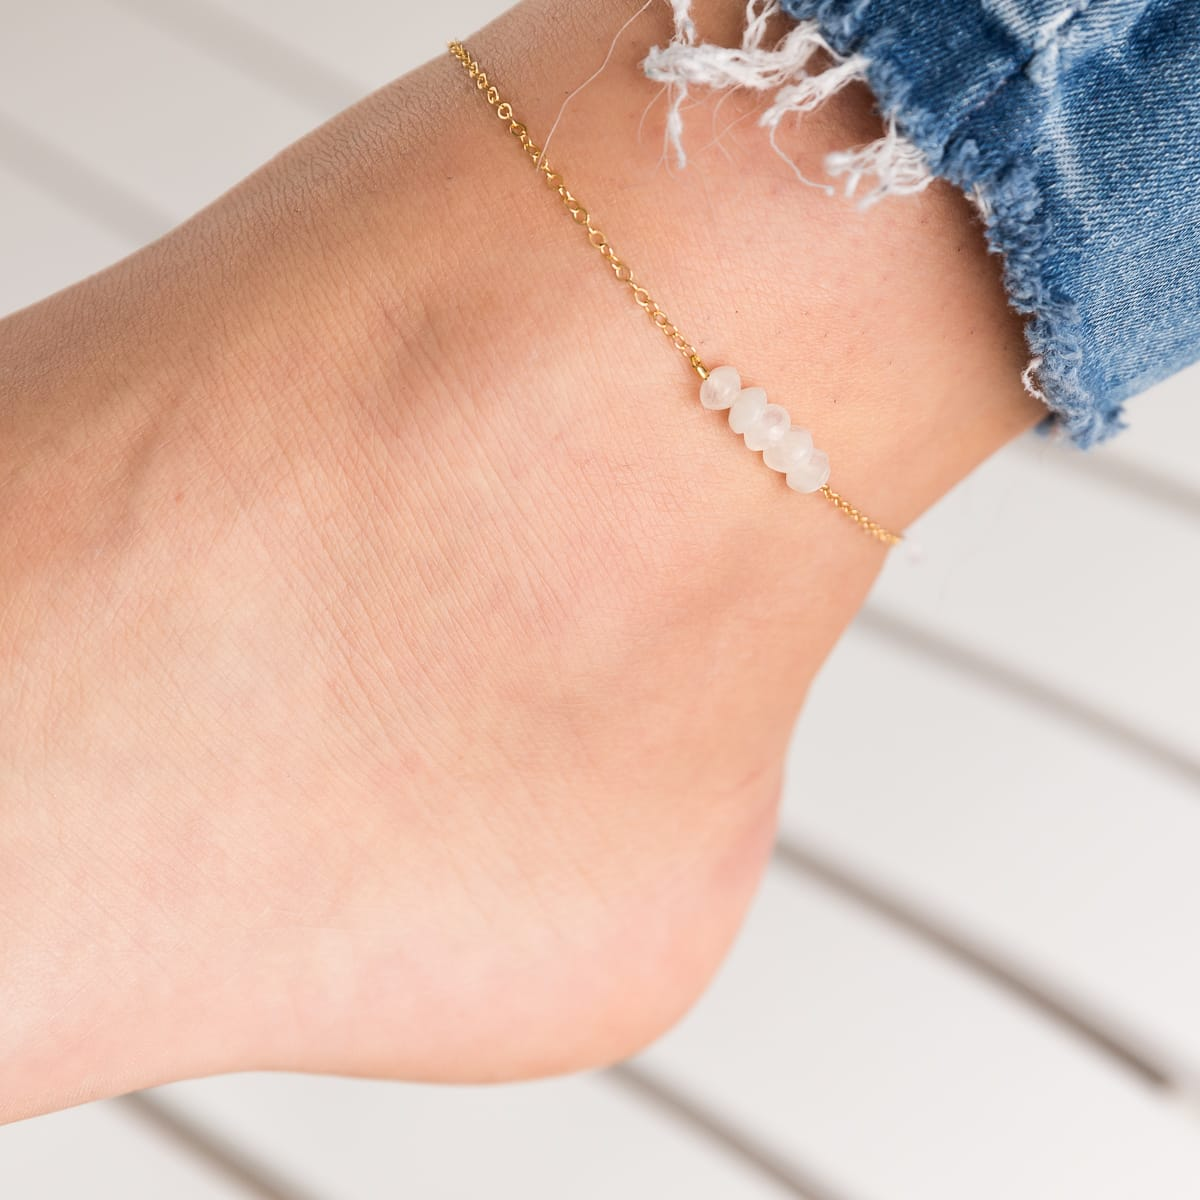 Moonstone Anklet, Moonstone Ankle Bracelet, Rainbow Moonstone, Bohemian, Gemstone Anklet, Liz.Beth Jewelry Co.